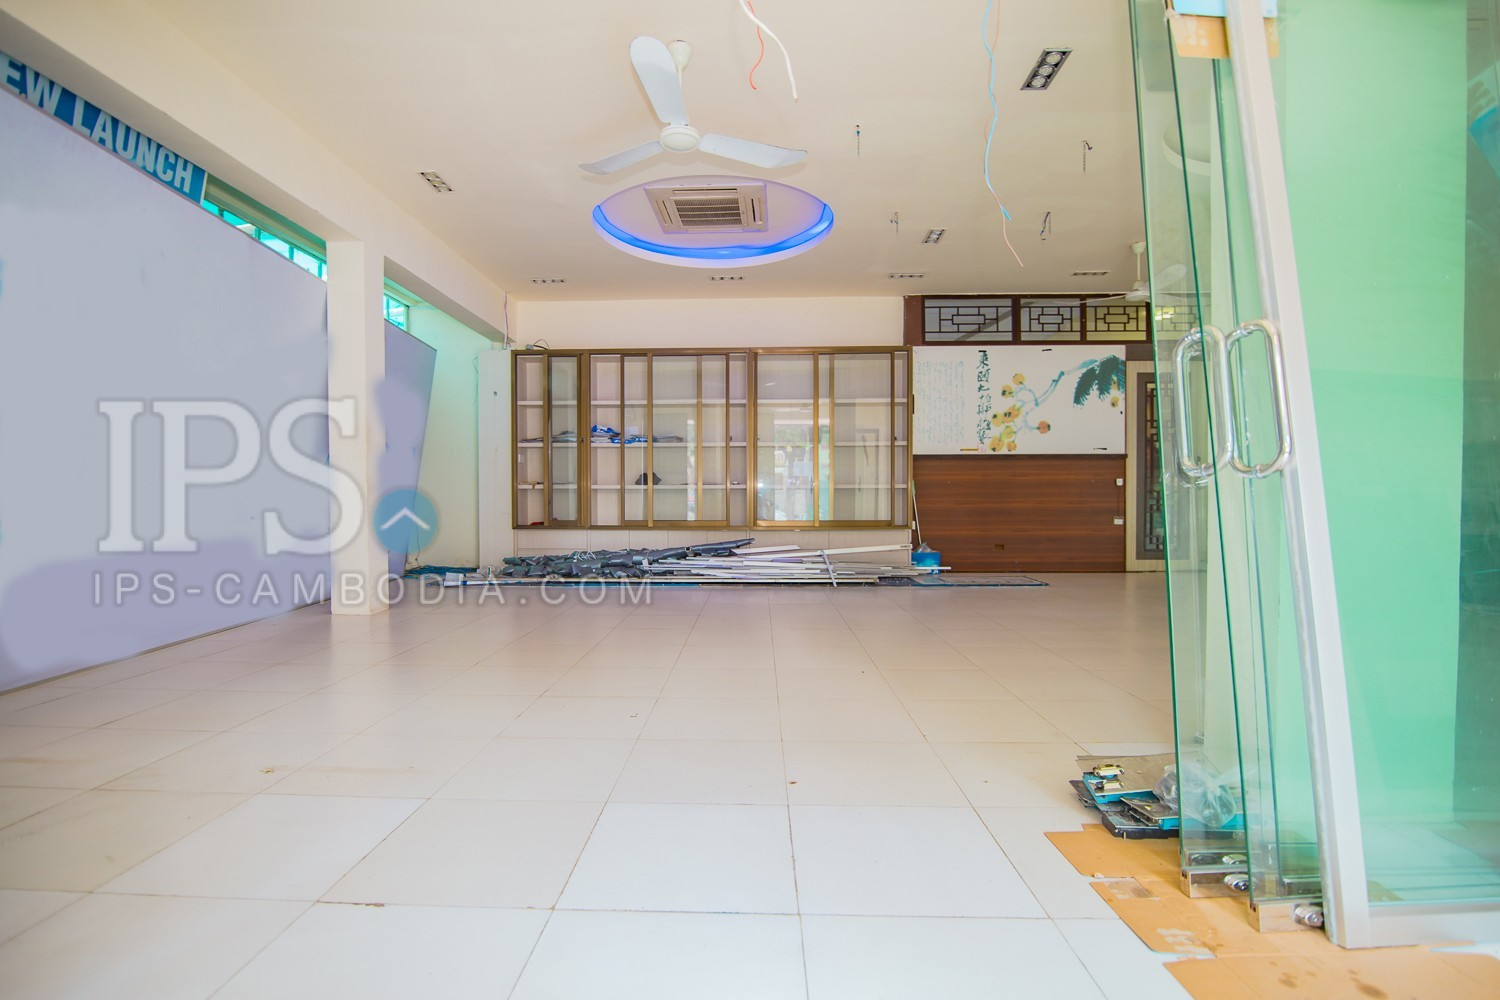 235 Sqm Office Space Retail Business For Rent - BKK1, Phnom Penh